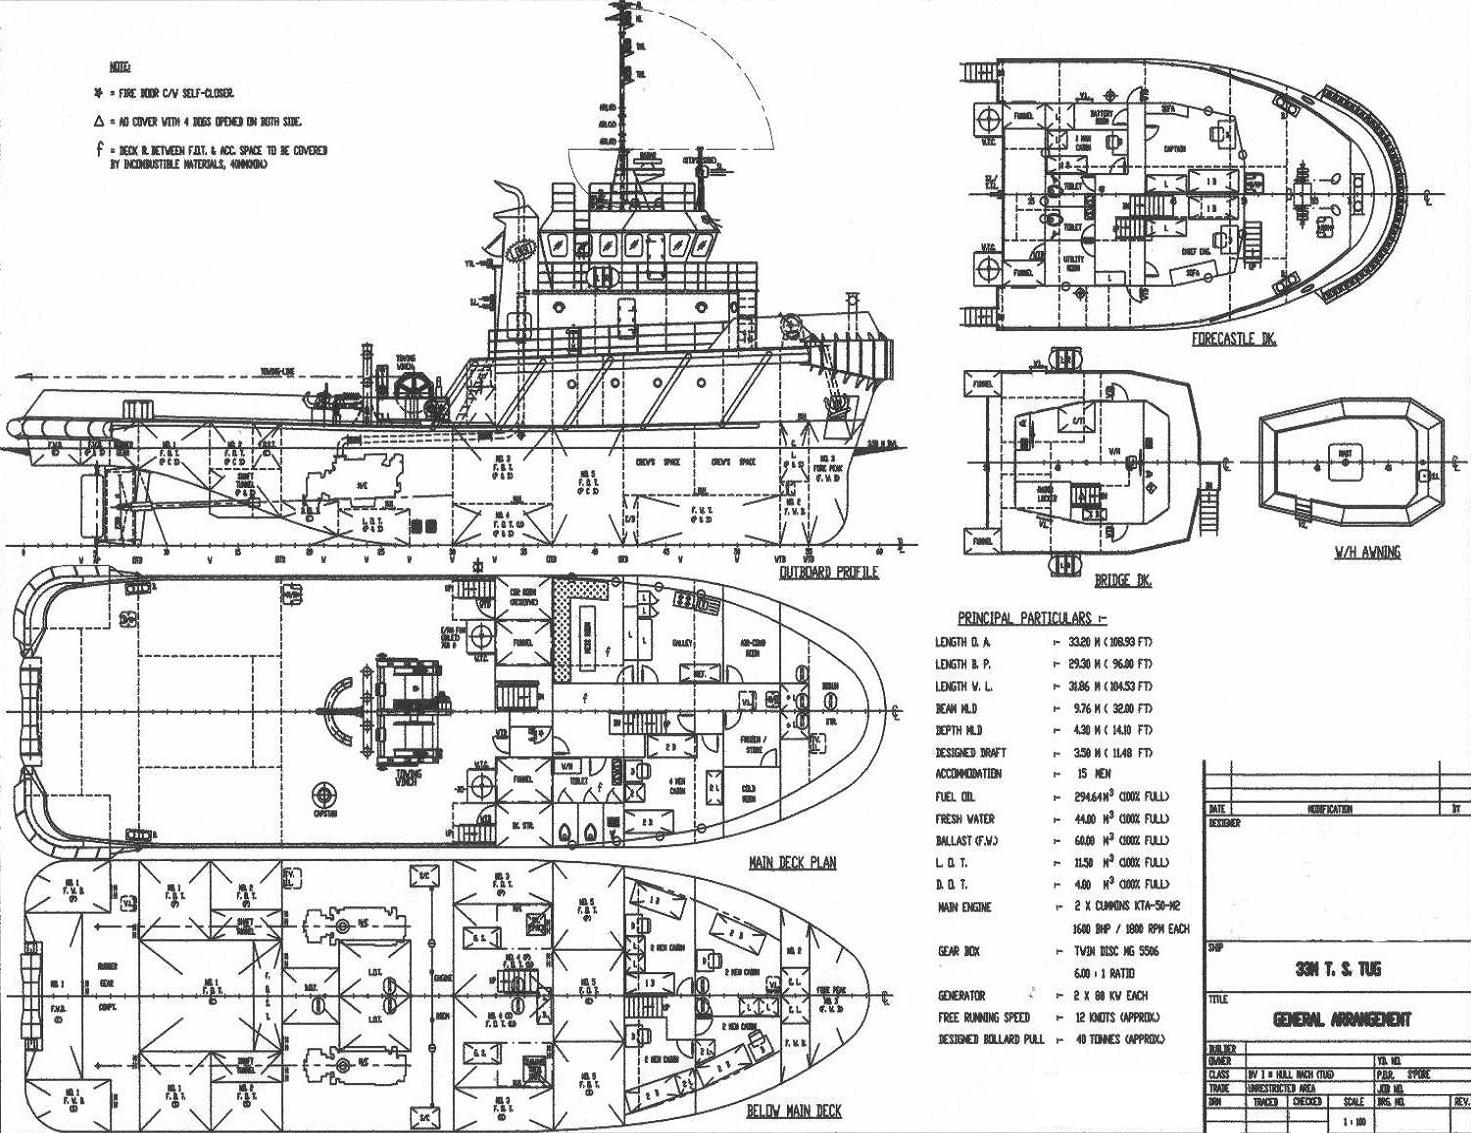 Tugboat Wiring Diagram - Volkswagen Golf 3 Wiring Diagram -  1982dodge.nescafe.jeanjaures37.fr | Tugboat Wiring Diagram |  | Wiring Diagram Resource